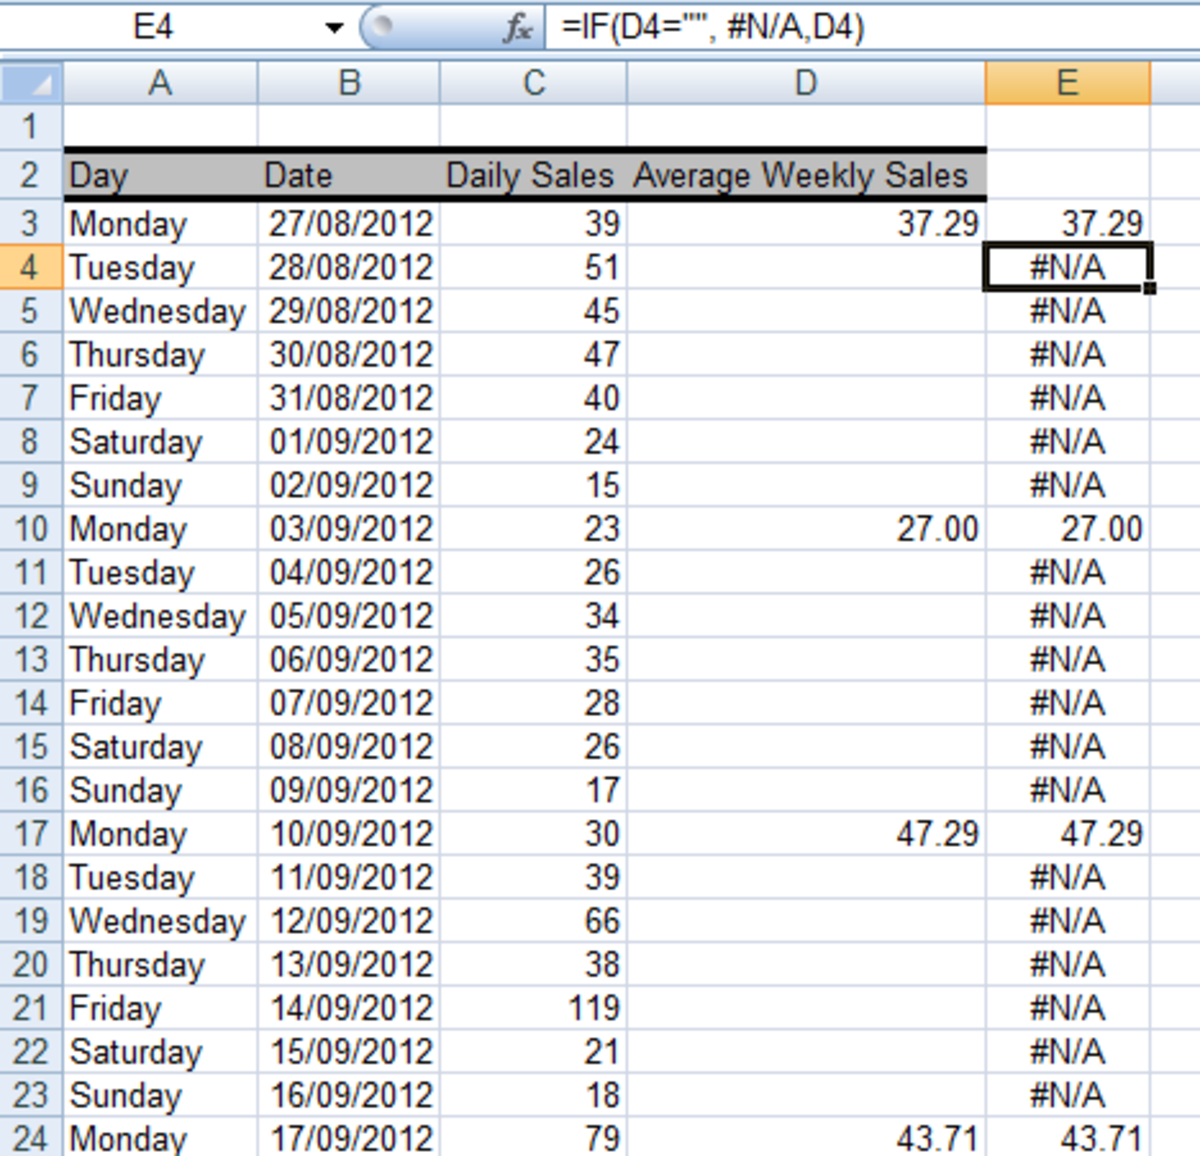 Ediblewildsus  Fascinating How To Get Excel  And  To Ignore Empty Cells In A Chart Or  With Extraordinary Using The If Function In A Formula To Convert Empty Cells To Na With Nice How To Use Excel To Calculate Also Normal Distribution Graph Generator Excel In Addition Current Date Formula In Excel And Ms Access Vs Ms Excel As Well As How To Use Excel To Calculate Additionally Count Numbers In Excel From Turbofuturecom With Ediblewildsus  Extraordinary How To Get Excel  And  To Ignore Empty Cells In A Chart Or  With Nice Using The If Function In A Formula To Convert Empty Cells To Na And Fascinating How To Use Excel To Calculate Also Normal Distribution Graph Generator Excel In Addition Current Date Formula In Excel From Turbofuturecom